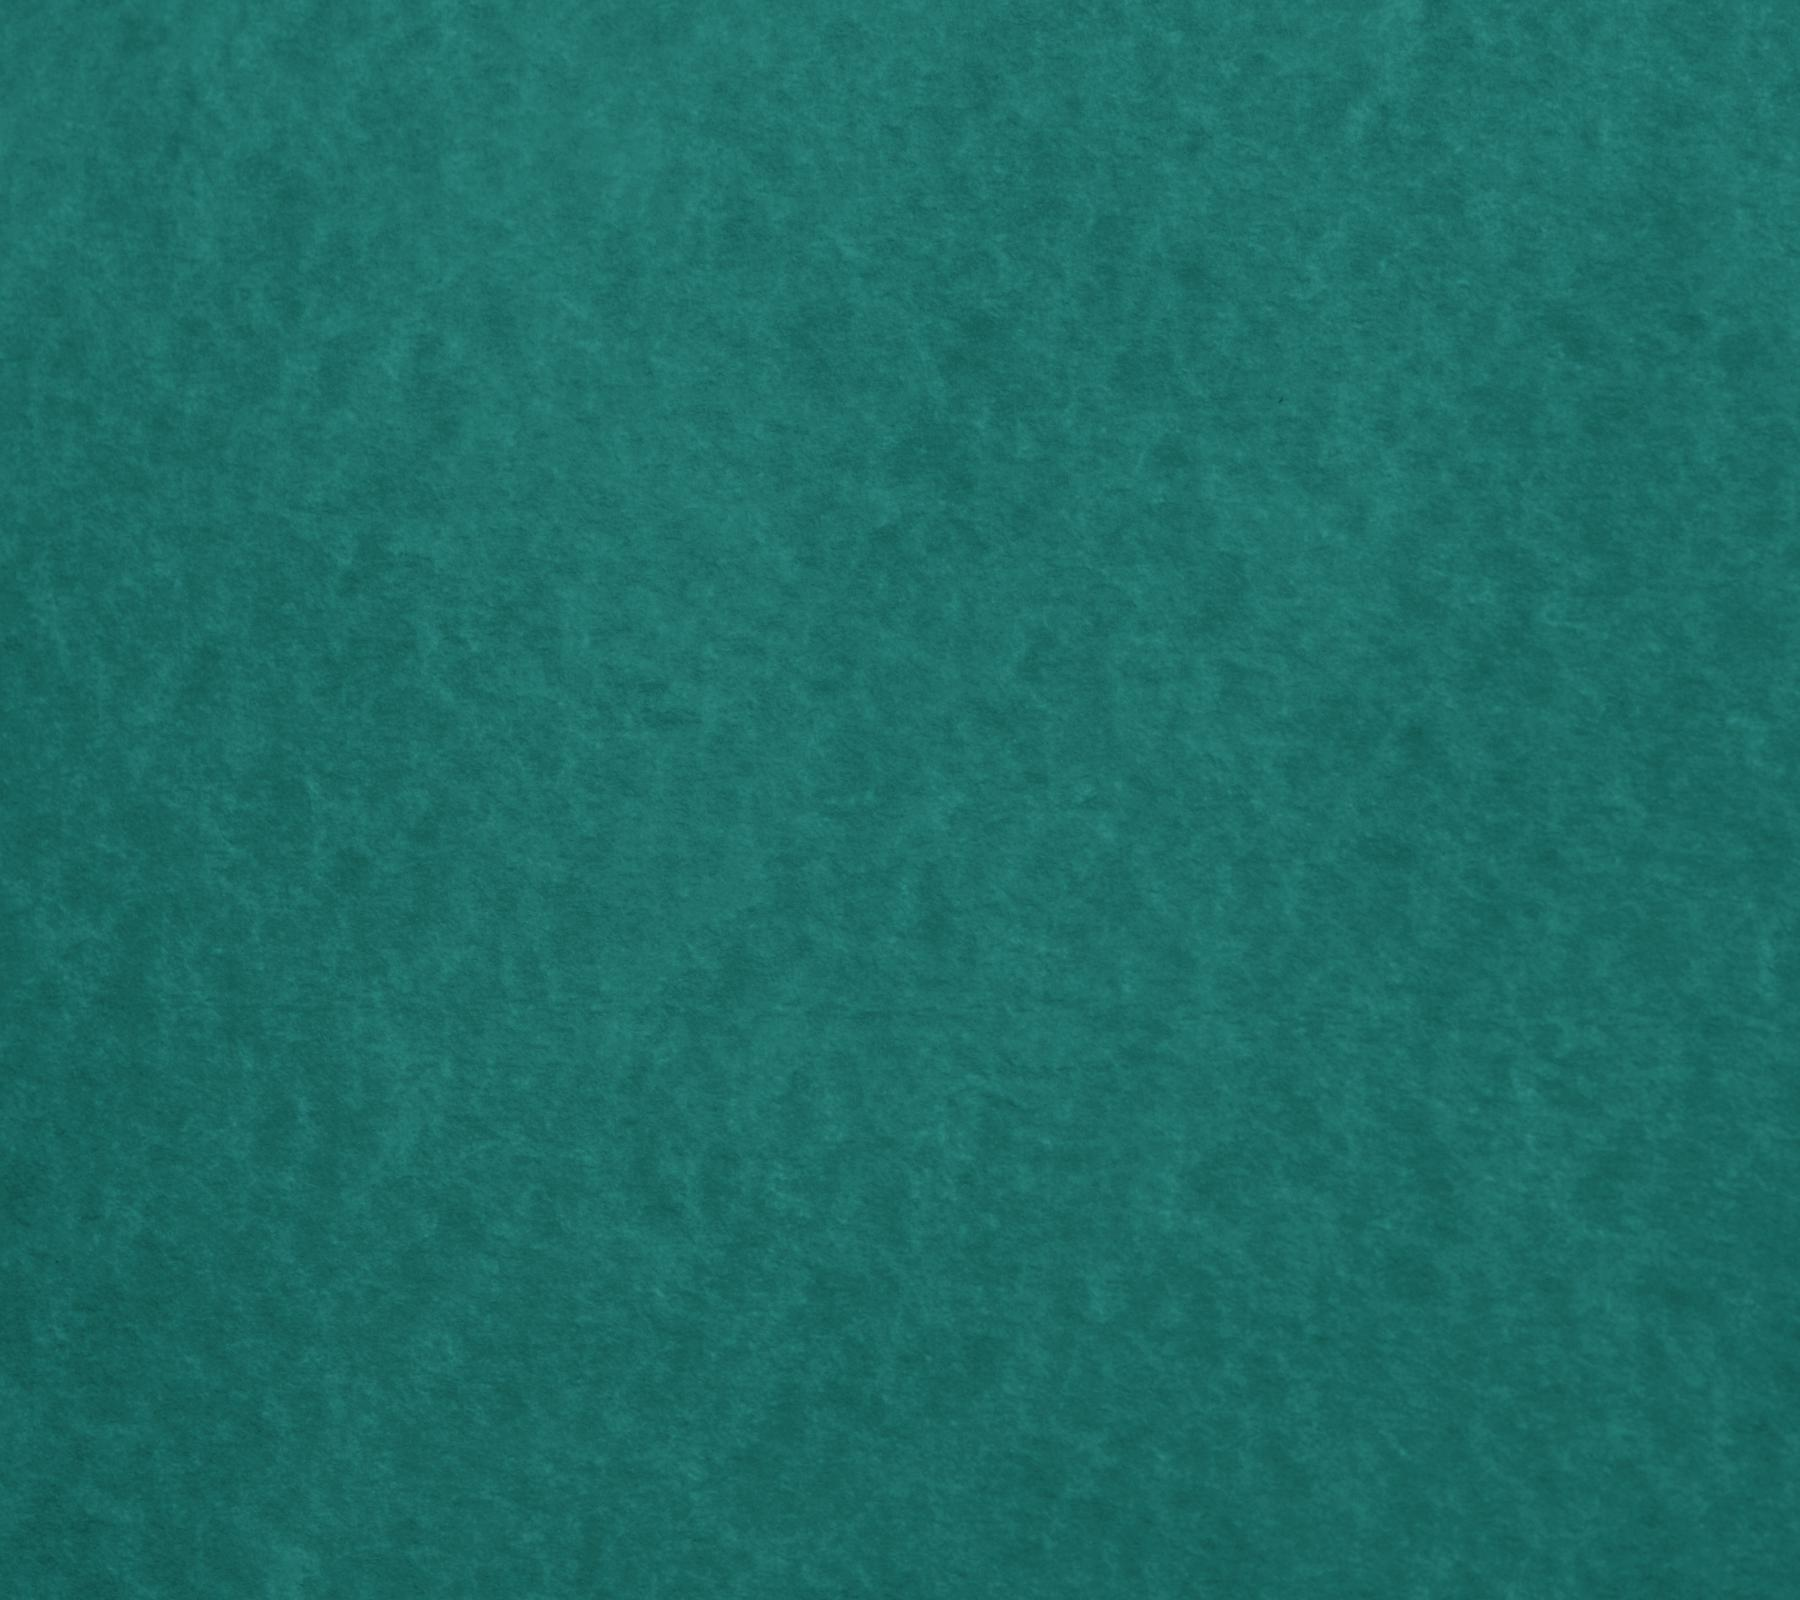 Teal parchment paper background 1800x1600 background image for Teal wallpaper